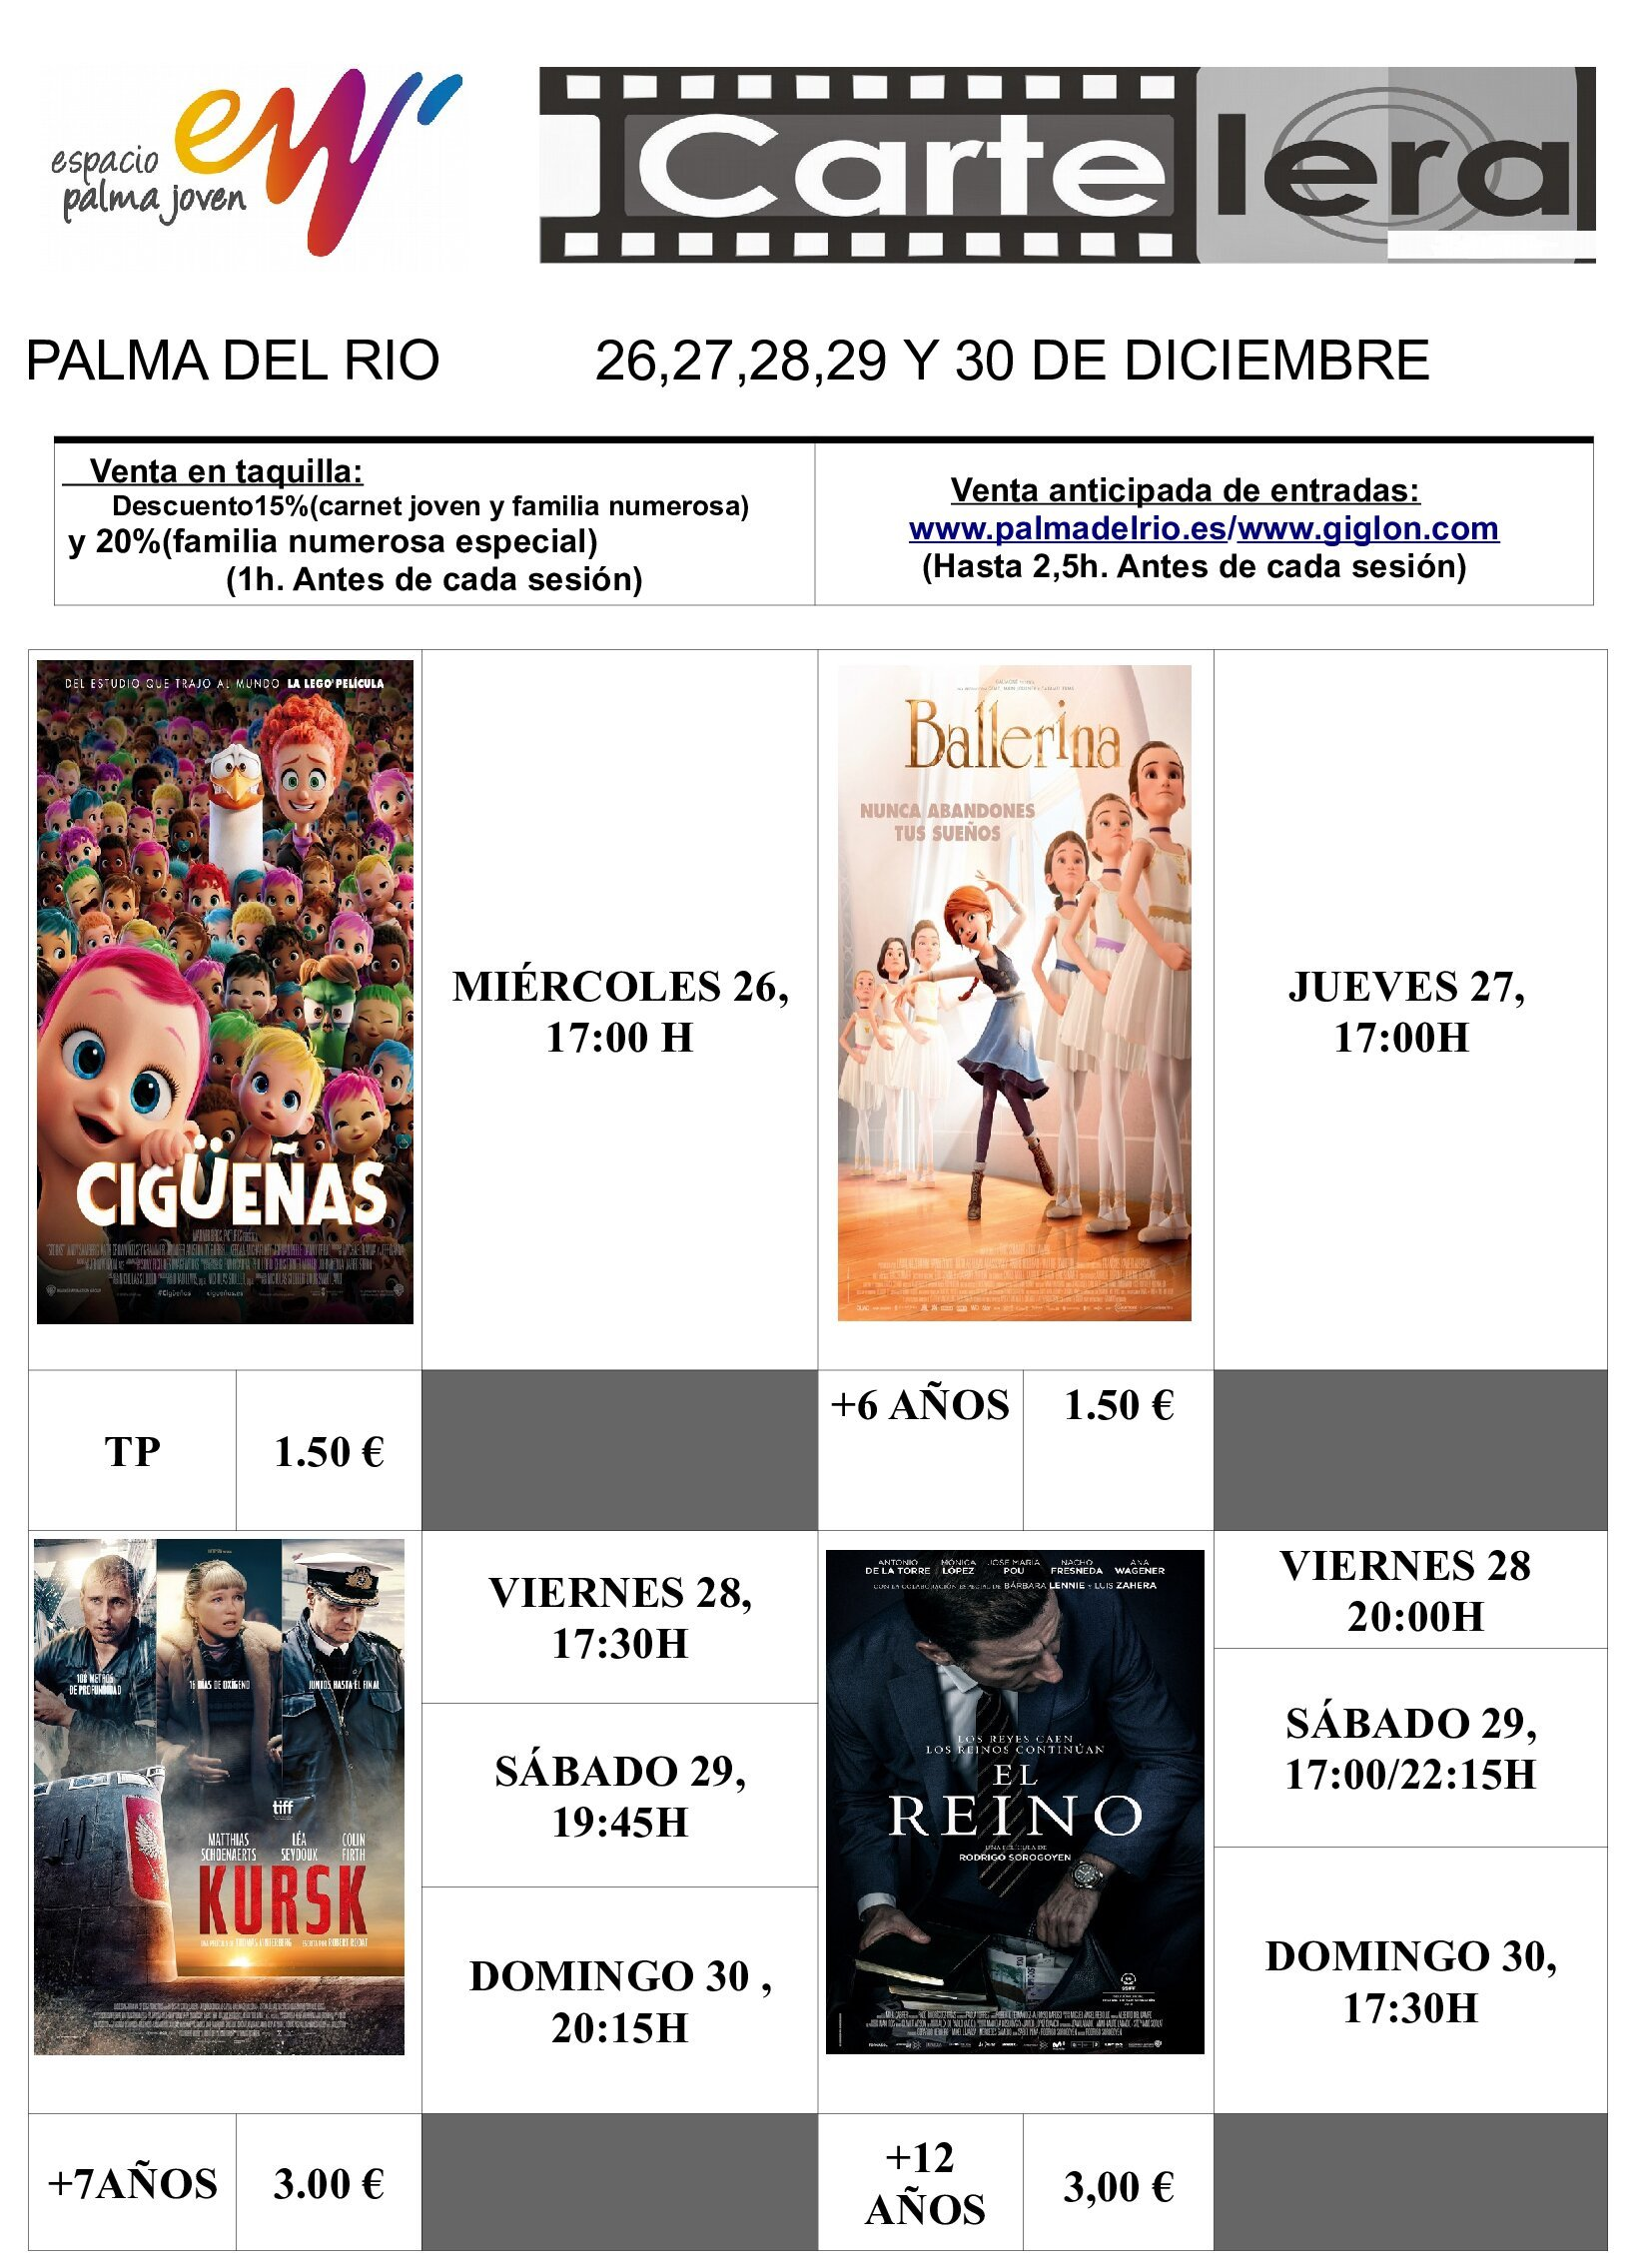 https://www.palmadelrio.es/sites/default/files/cine.26a30.diciembre.2018.jpg